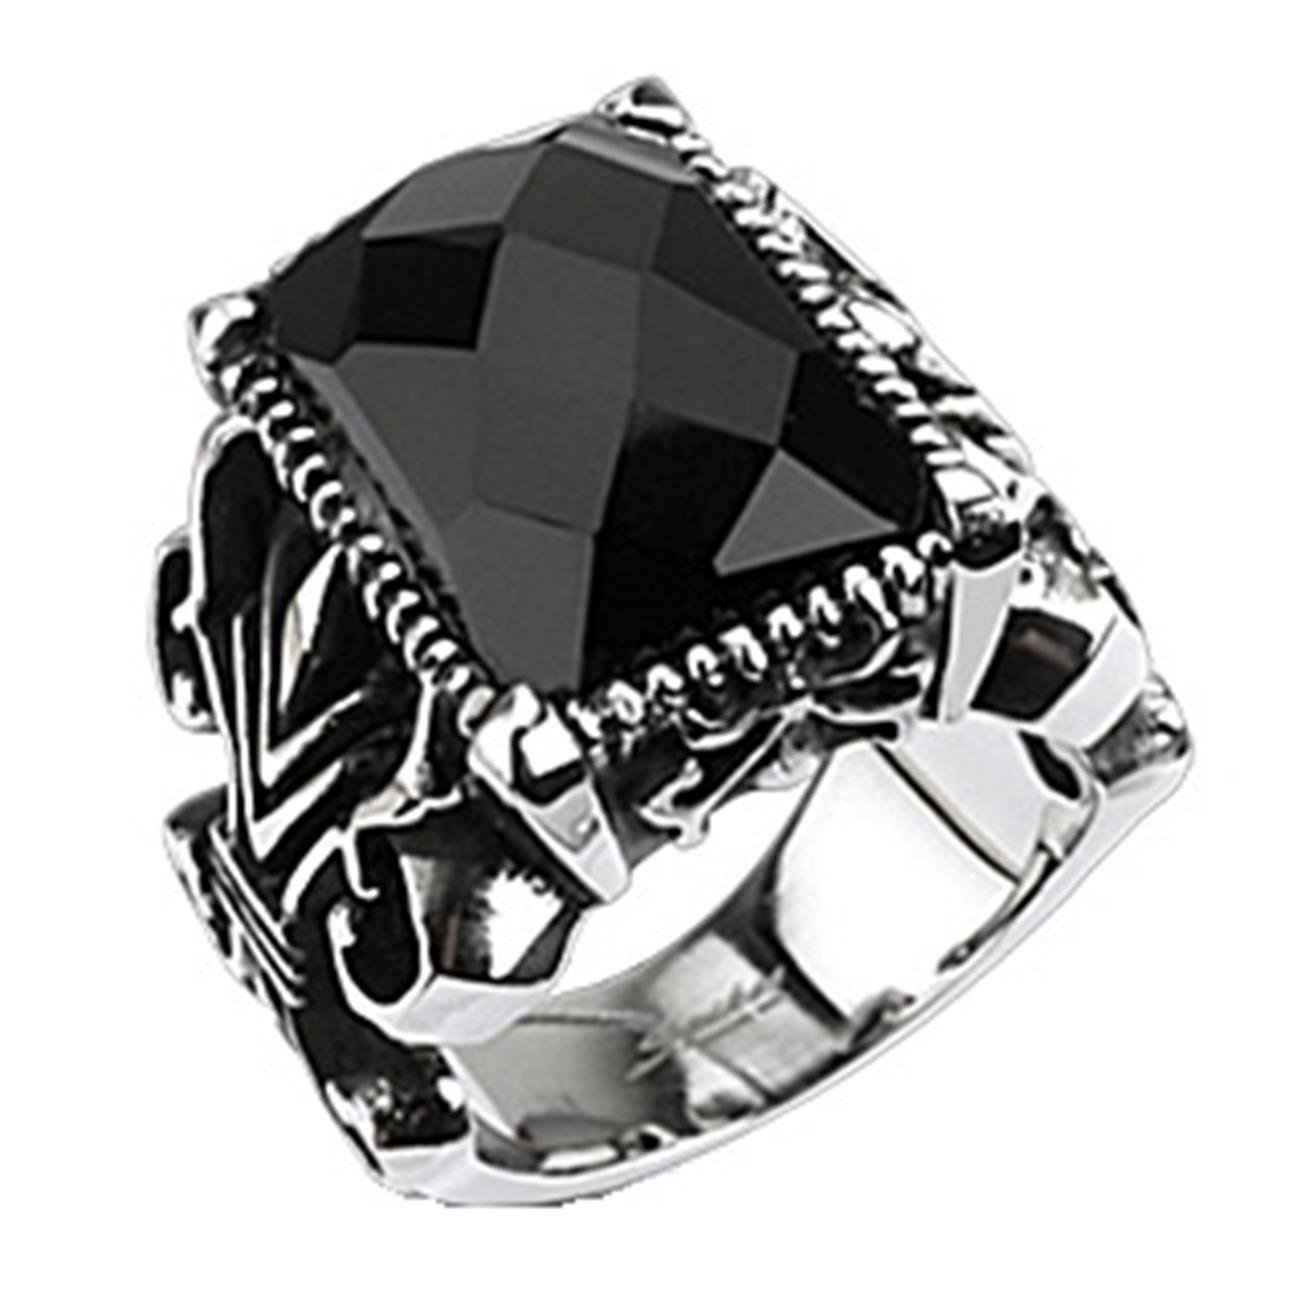 Paula & Fritz Stainless Steel Ring Surgical Steel 316L Gothic Ring Black Onyx Stone - Size = 66 (21.0) - [R-Q5196-12]